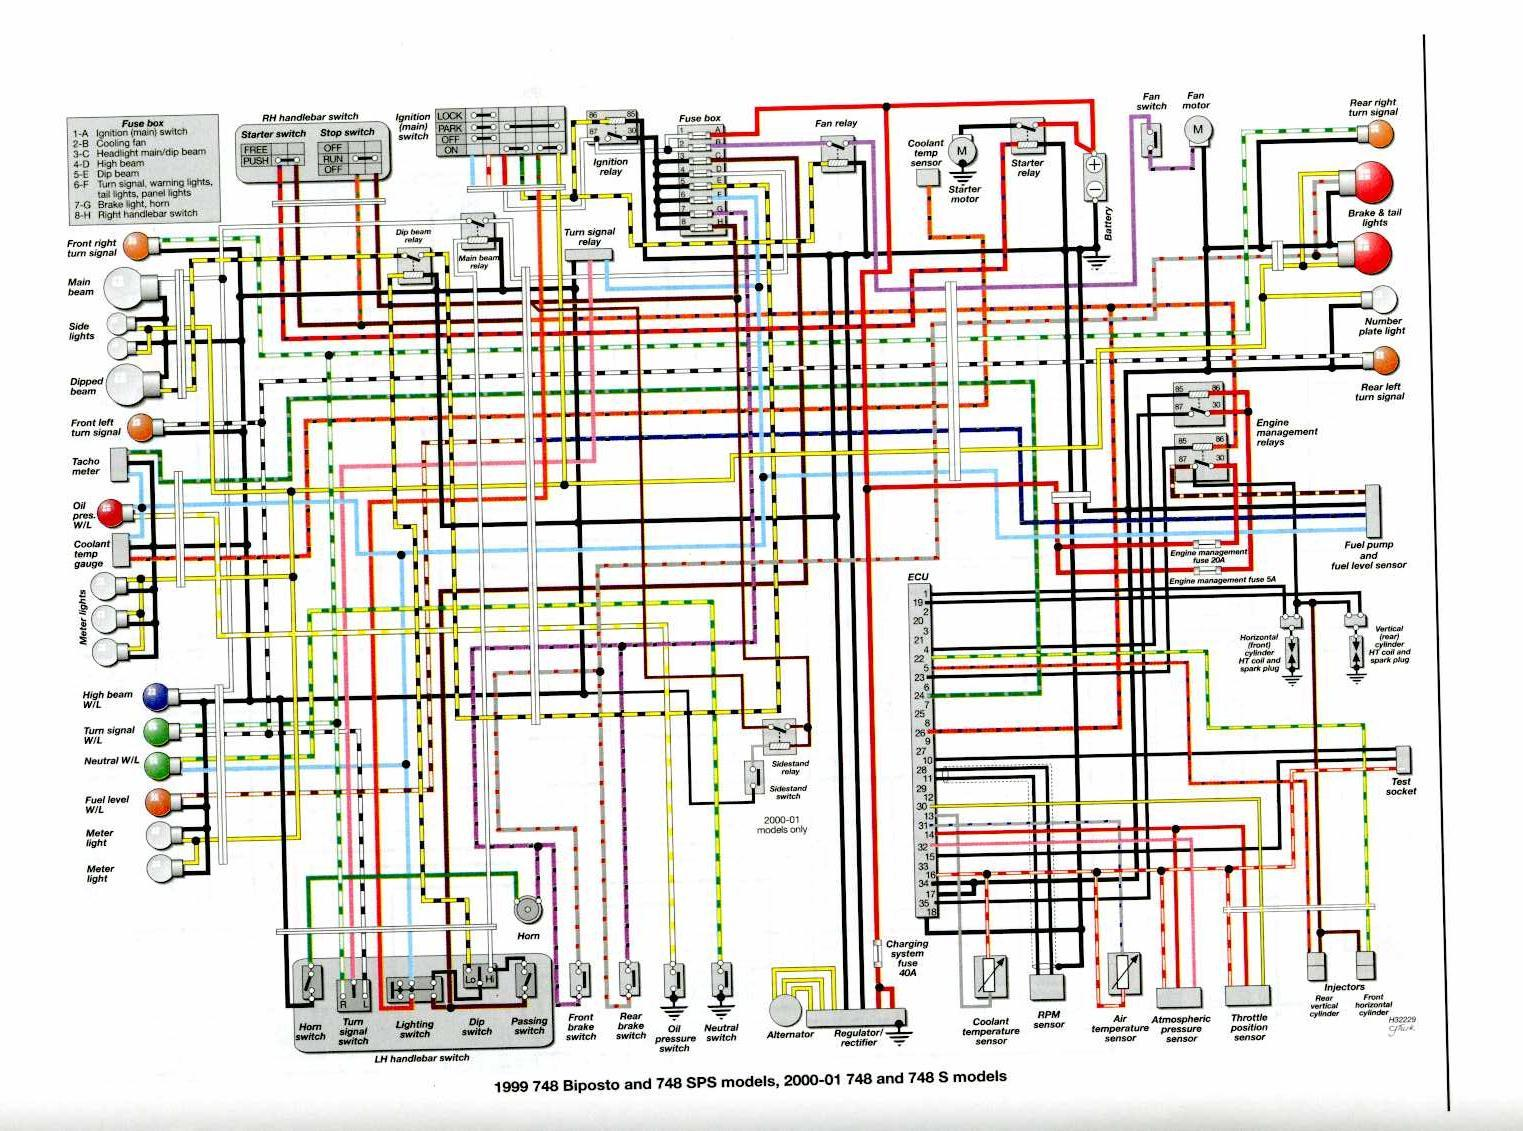 American Autowire Wiring Harness Can You Email Fax Link Me A Superbike Wiring Diagram